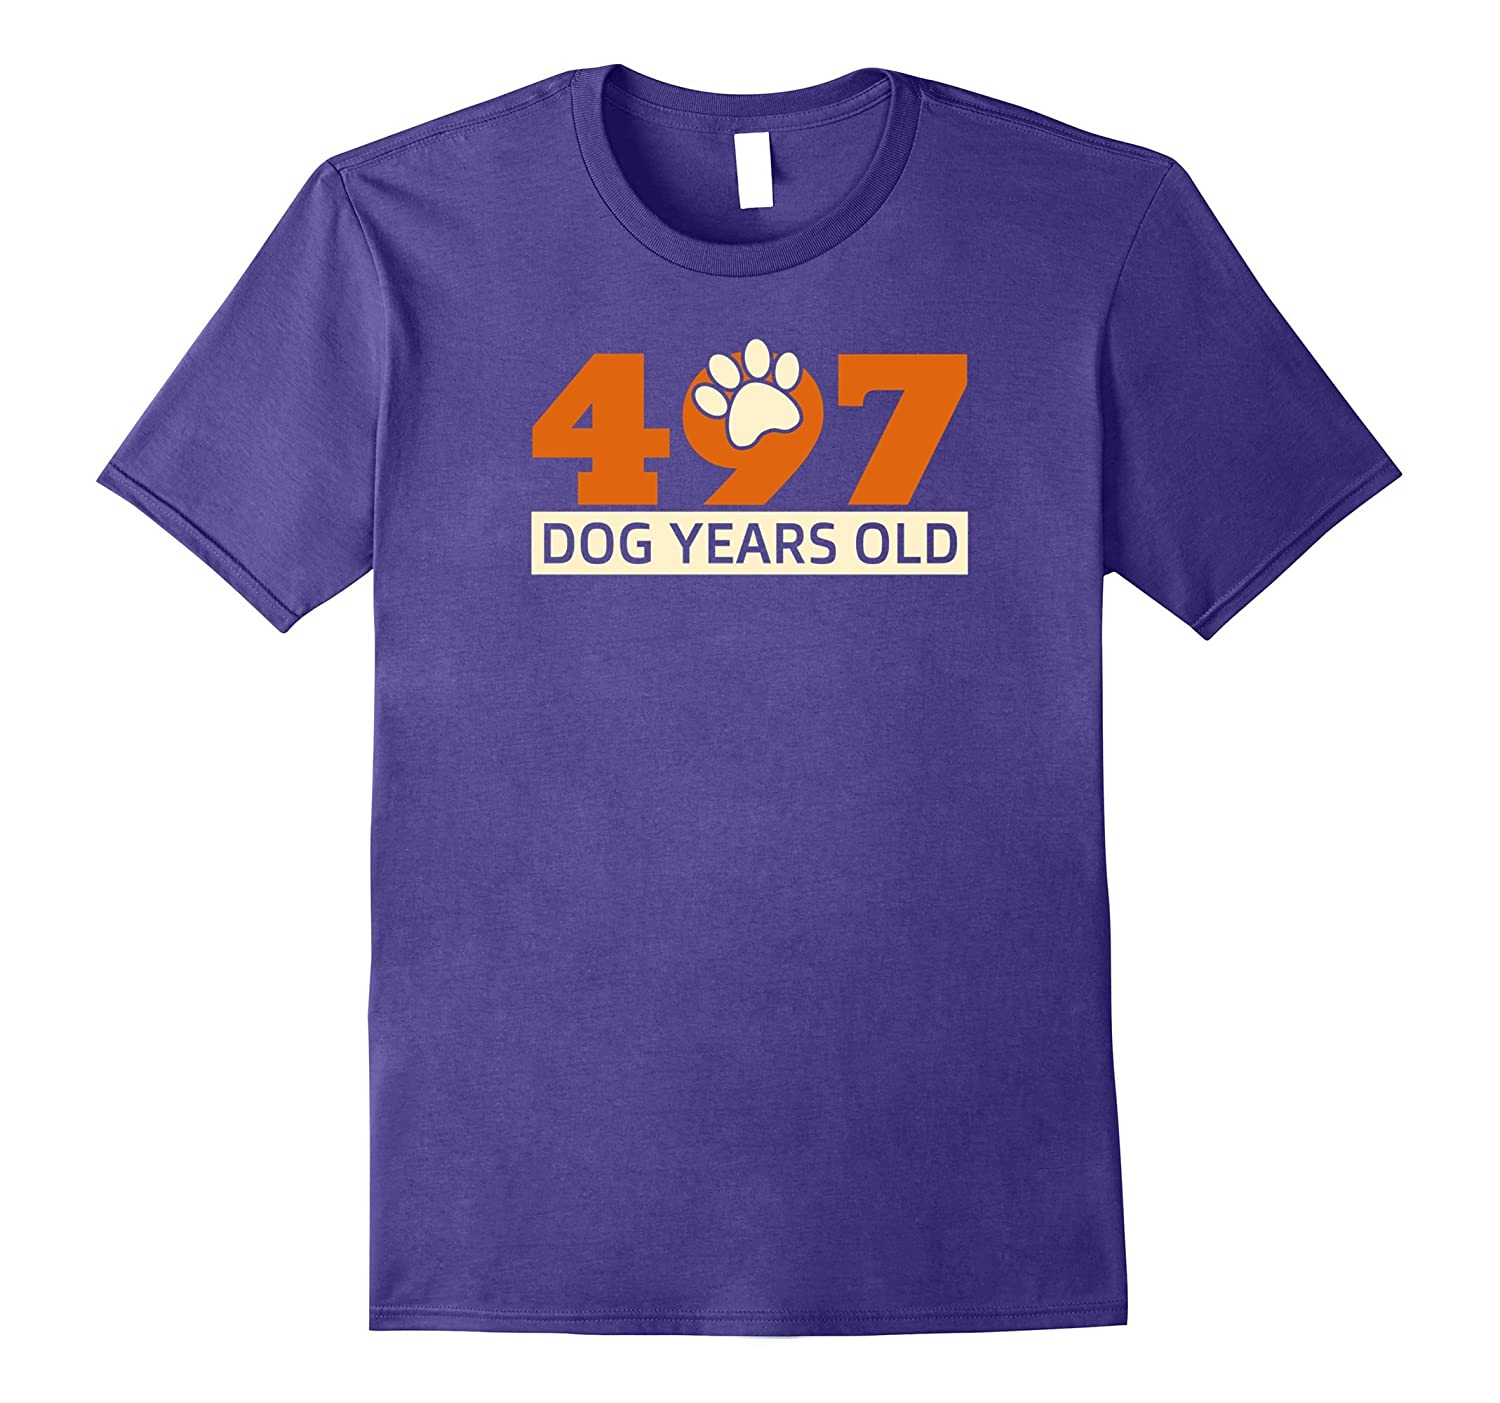 497 Dog Years Old Funny 71 Birthday Dog Lover T-Shirt-4LVS